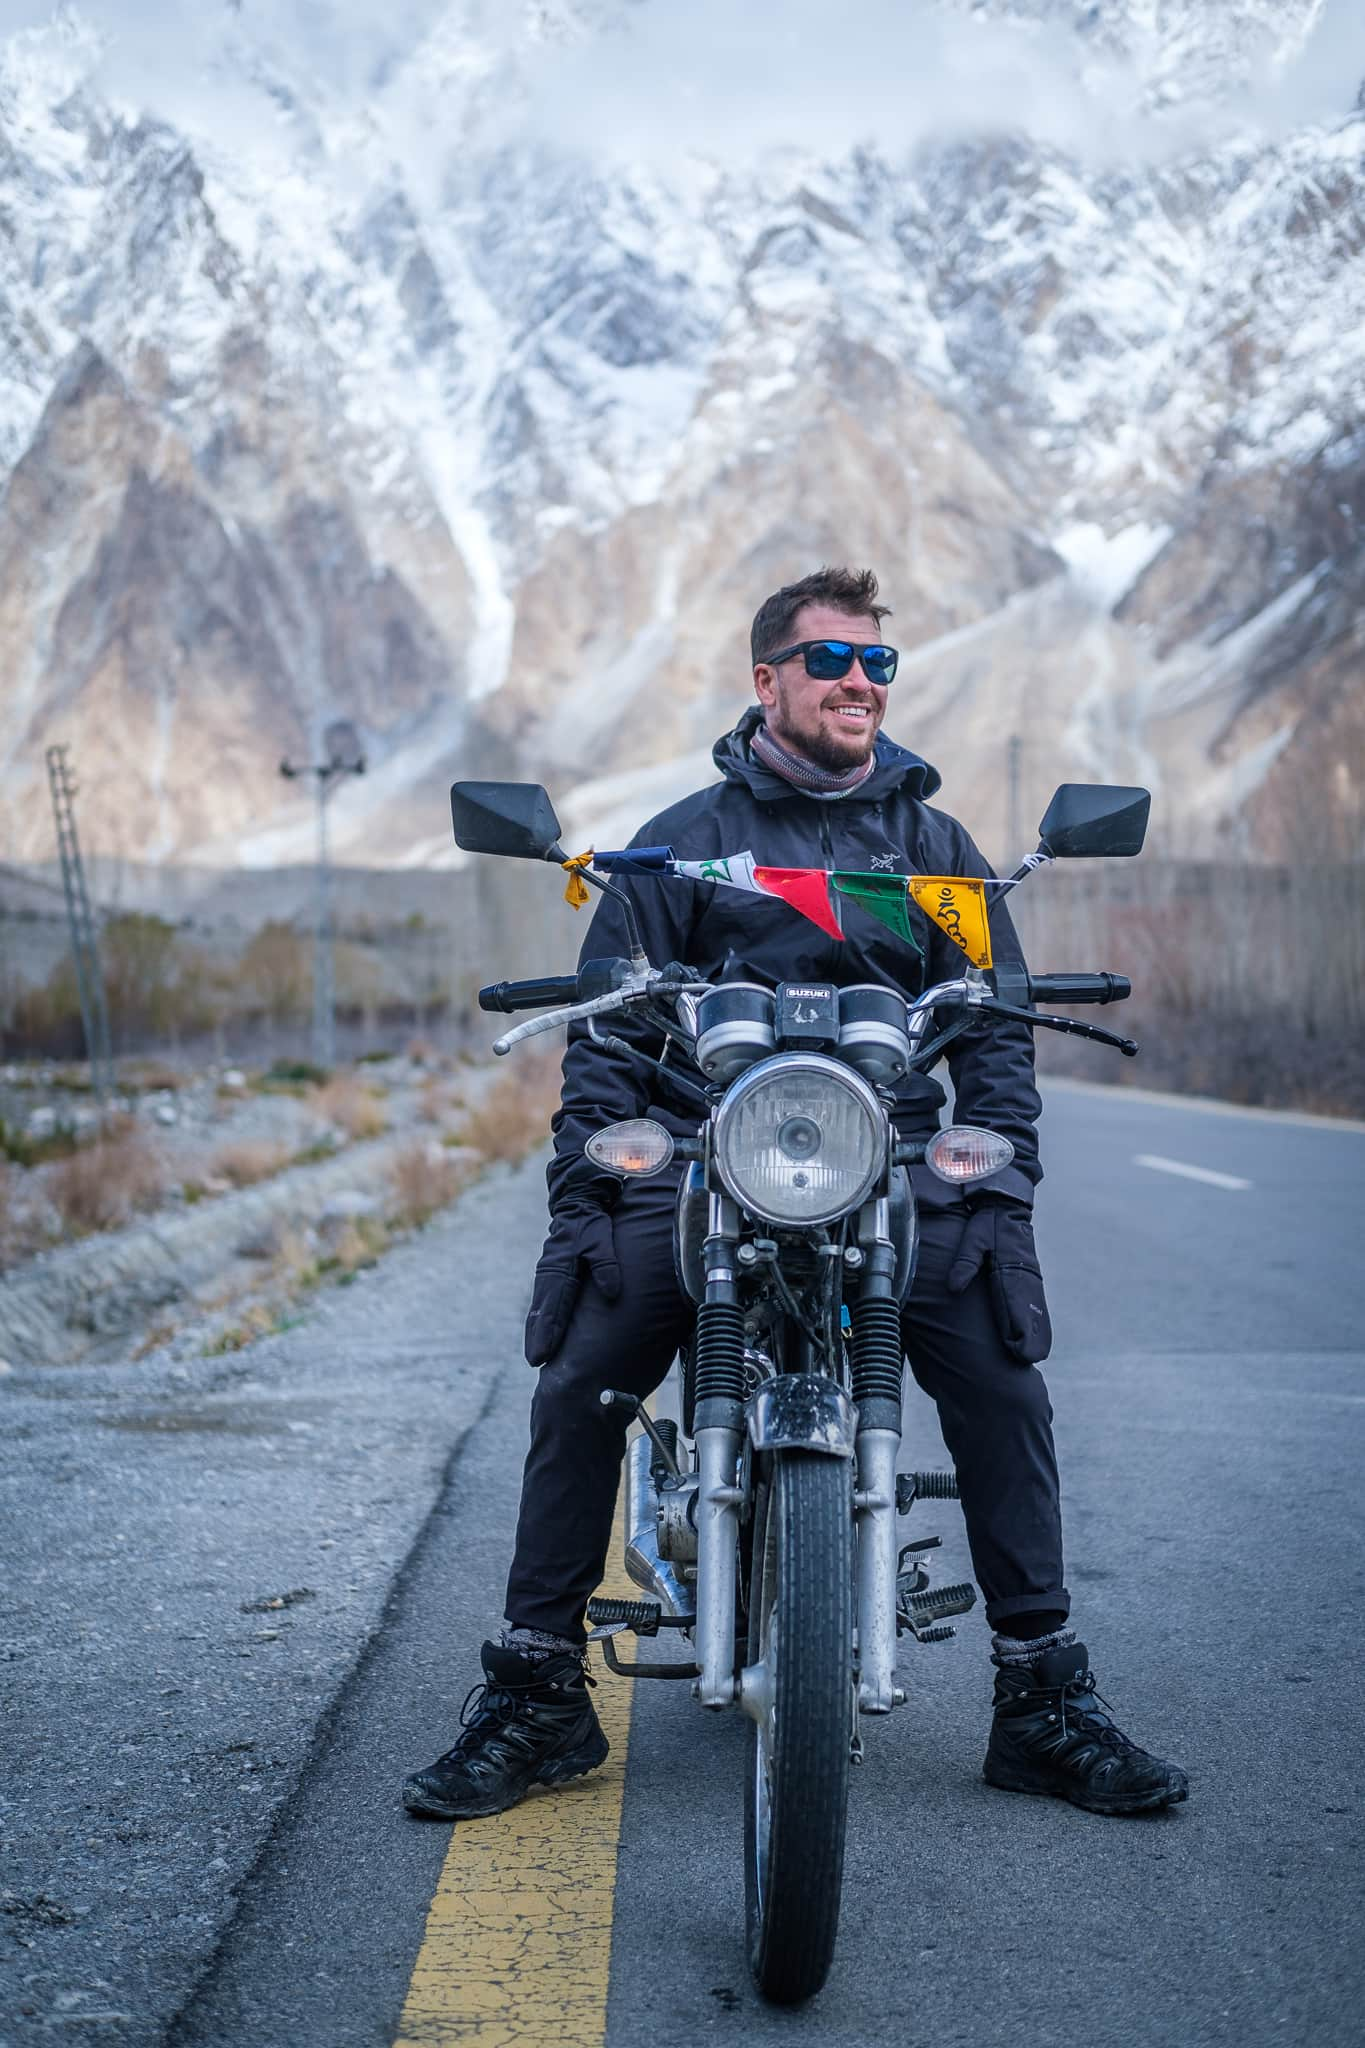 Will on a motorbike with mountains behind him